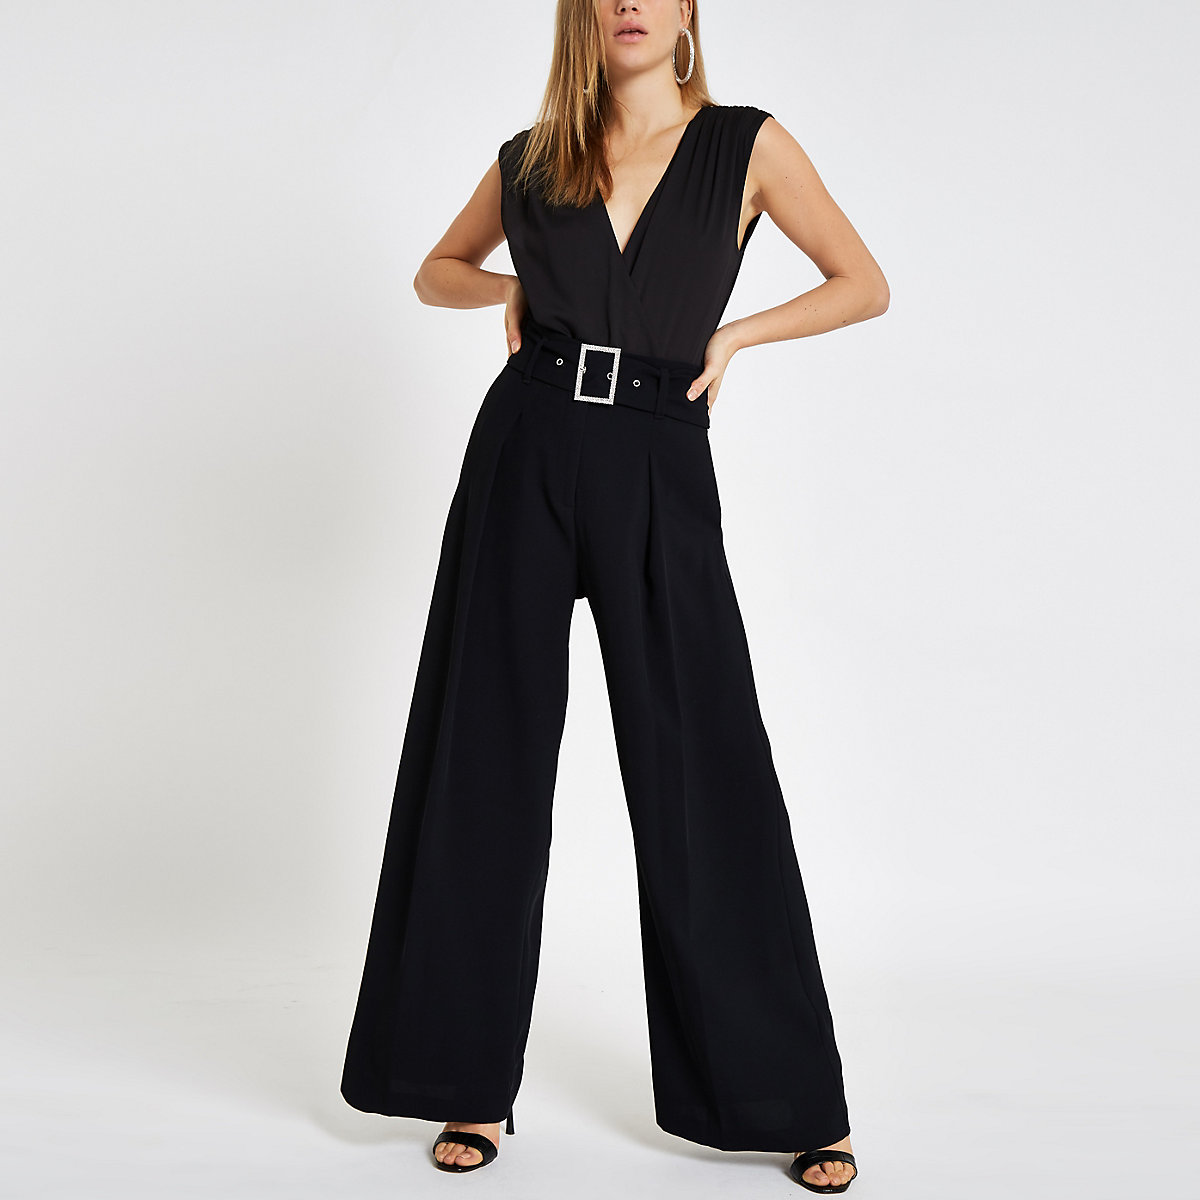 Black wrap front sleeveless bodysuit